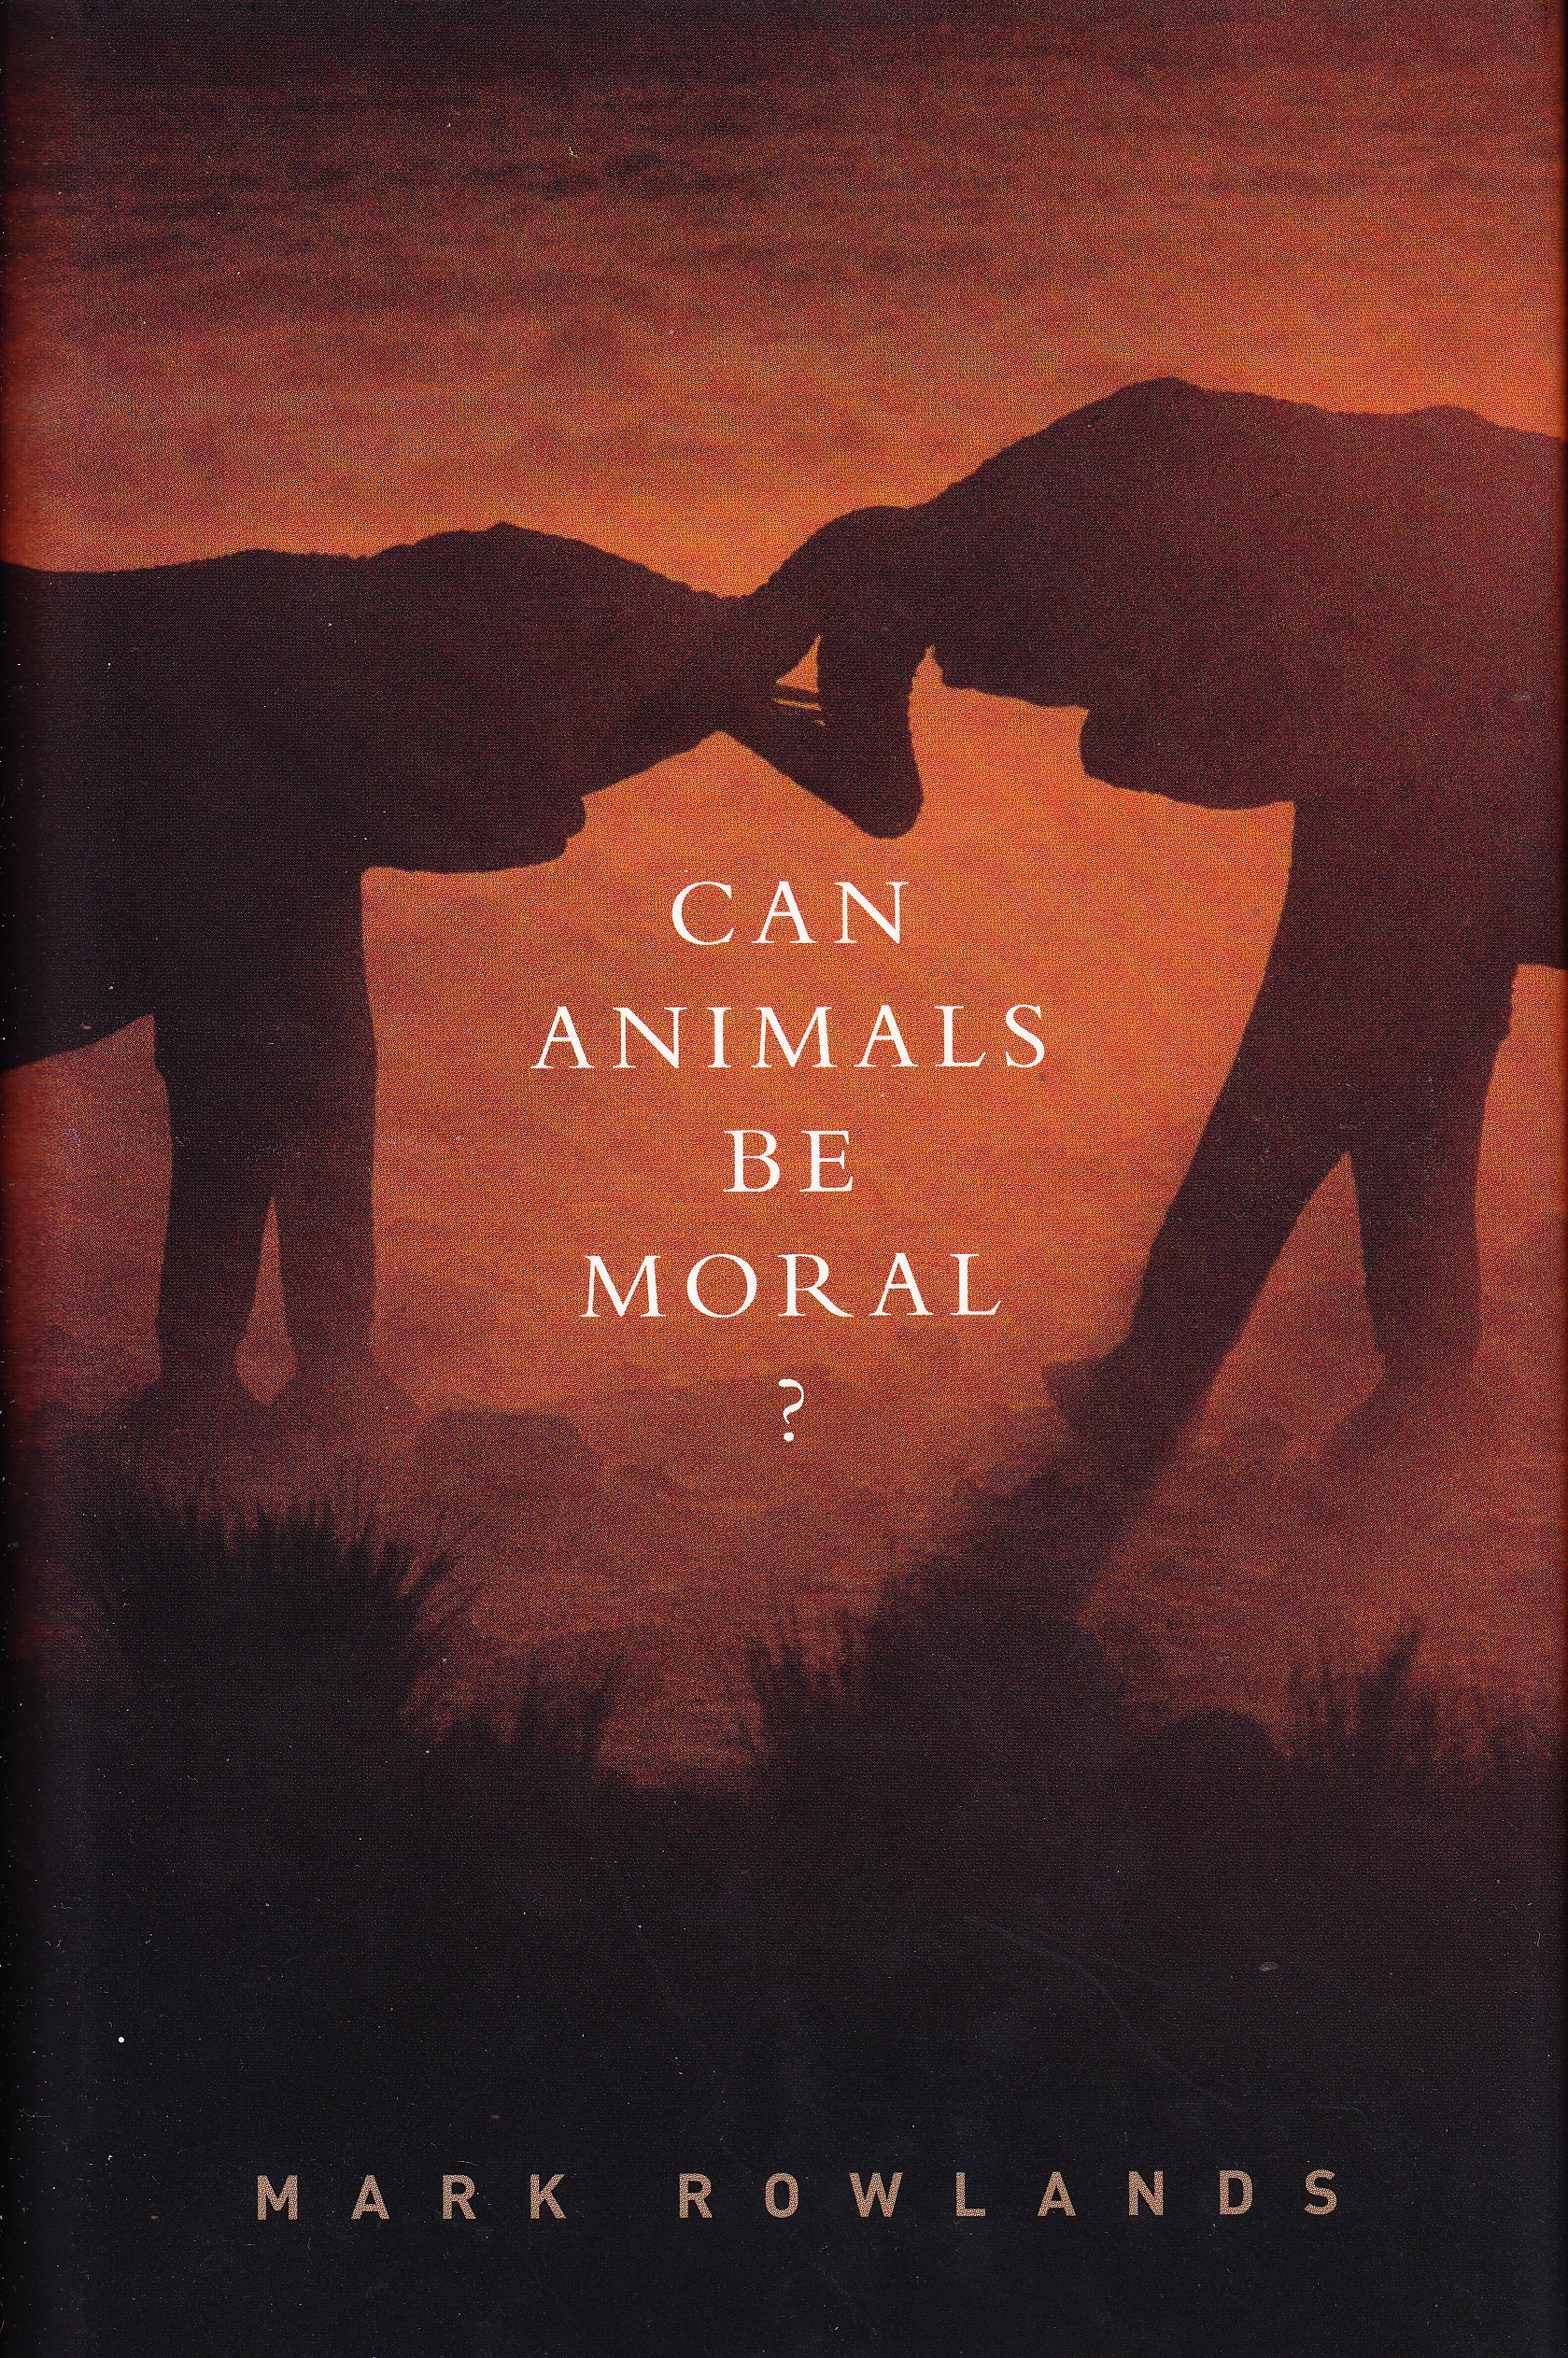 moral animal The moral animal is the book on evolutionary psychology robert wright applies a straightforward game-theoretic analysis to theorize how natural selection shaped human psychology, and gets remarkably penetrating insights into human nature.